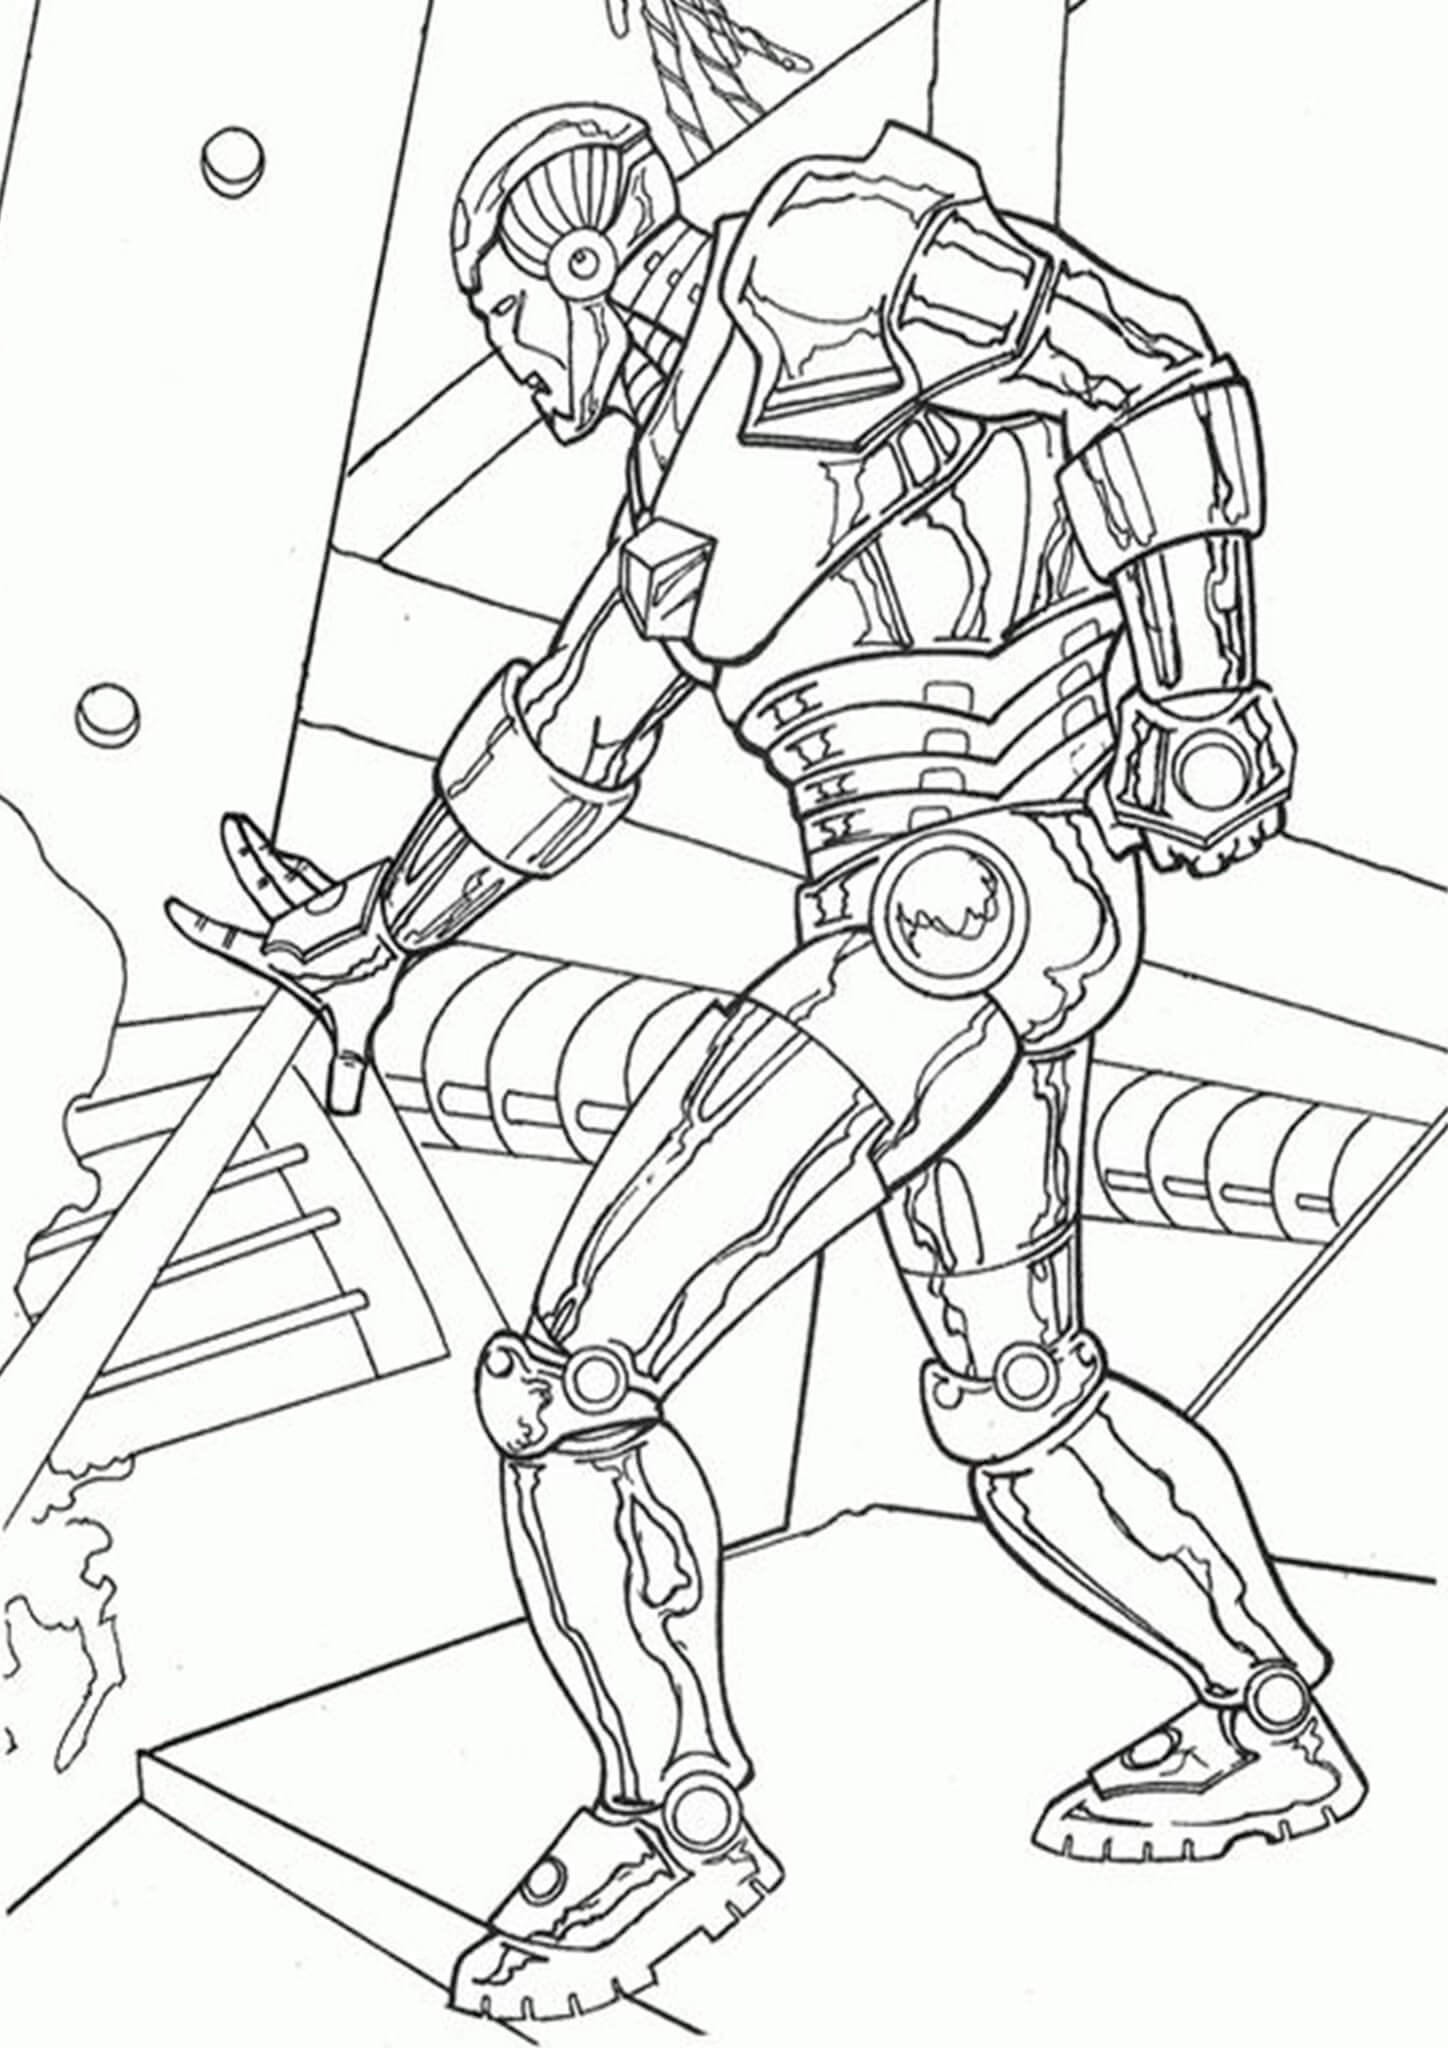 Free Easy To Print Iron Man Coloring Pages Superhero Coloring Pages Cool Coloring Pages Superhero Coloring